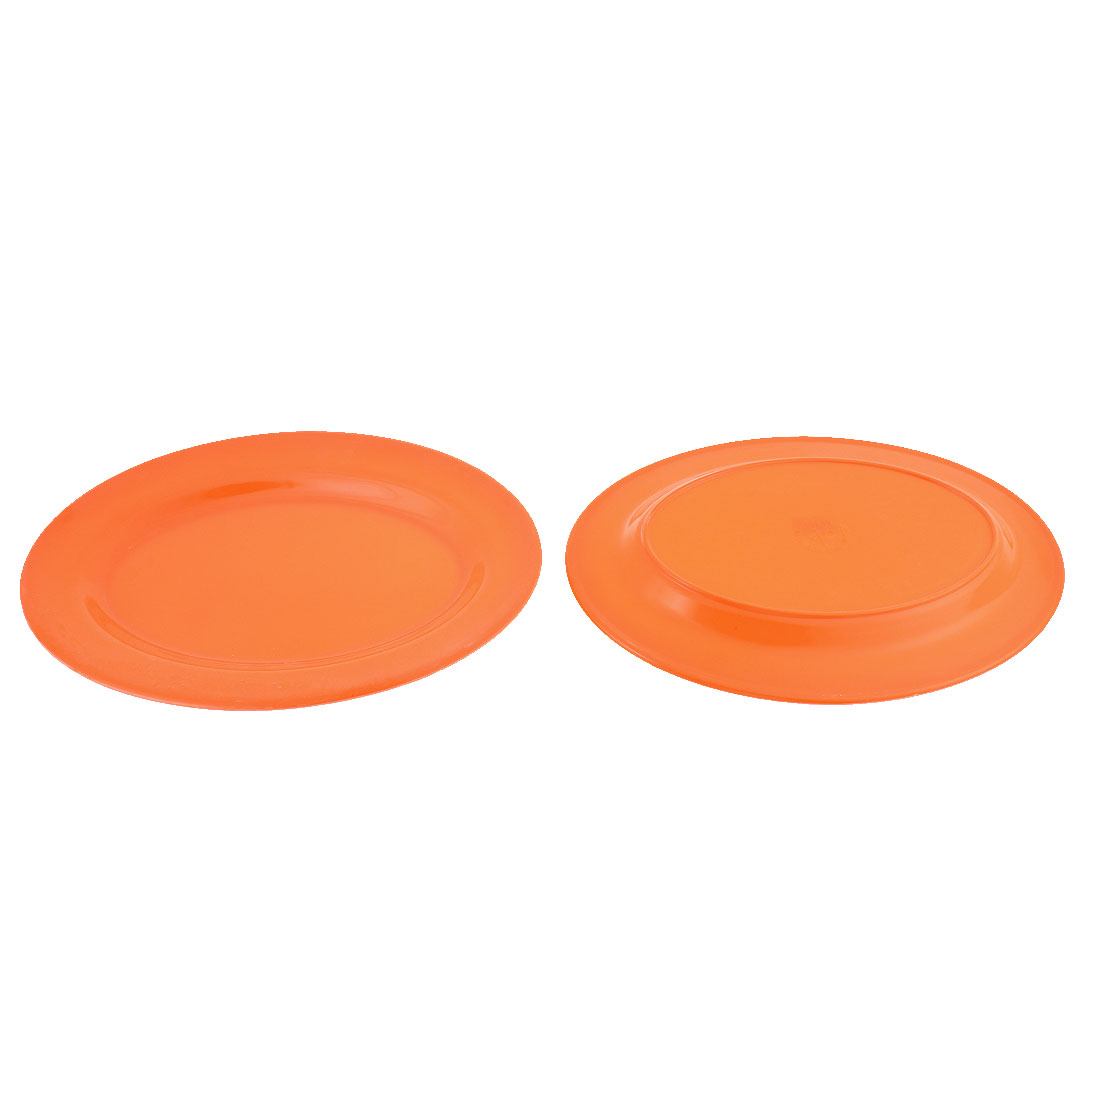 Kitchenware Plastic Oval Design Food Dessert Serving Plate Dish Orange 2pcs